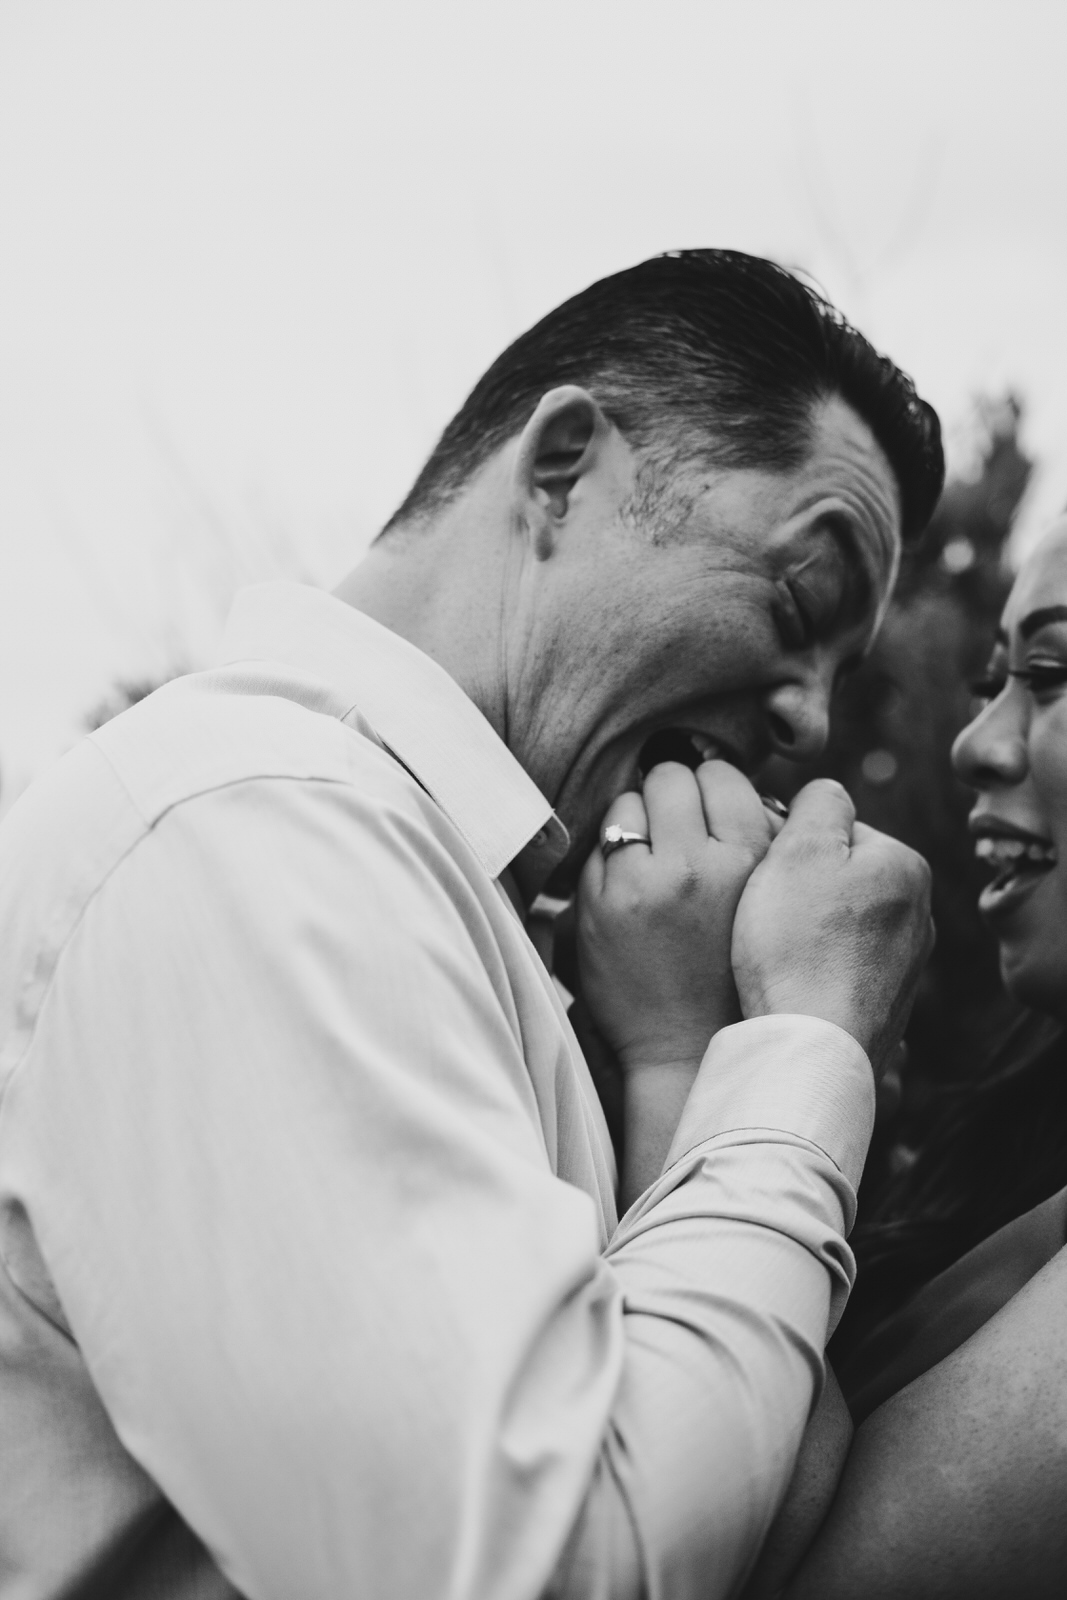 A man biting a woman's hand as she laughs